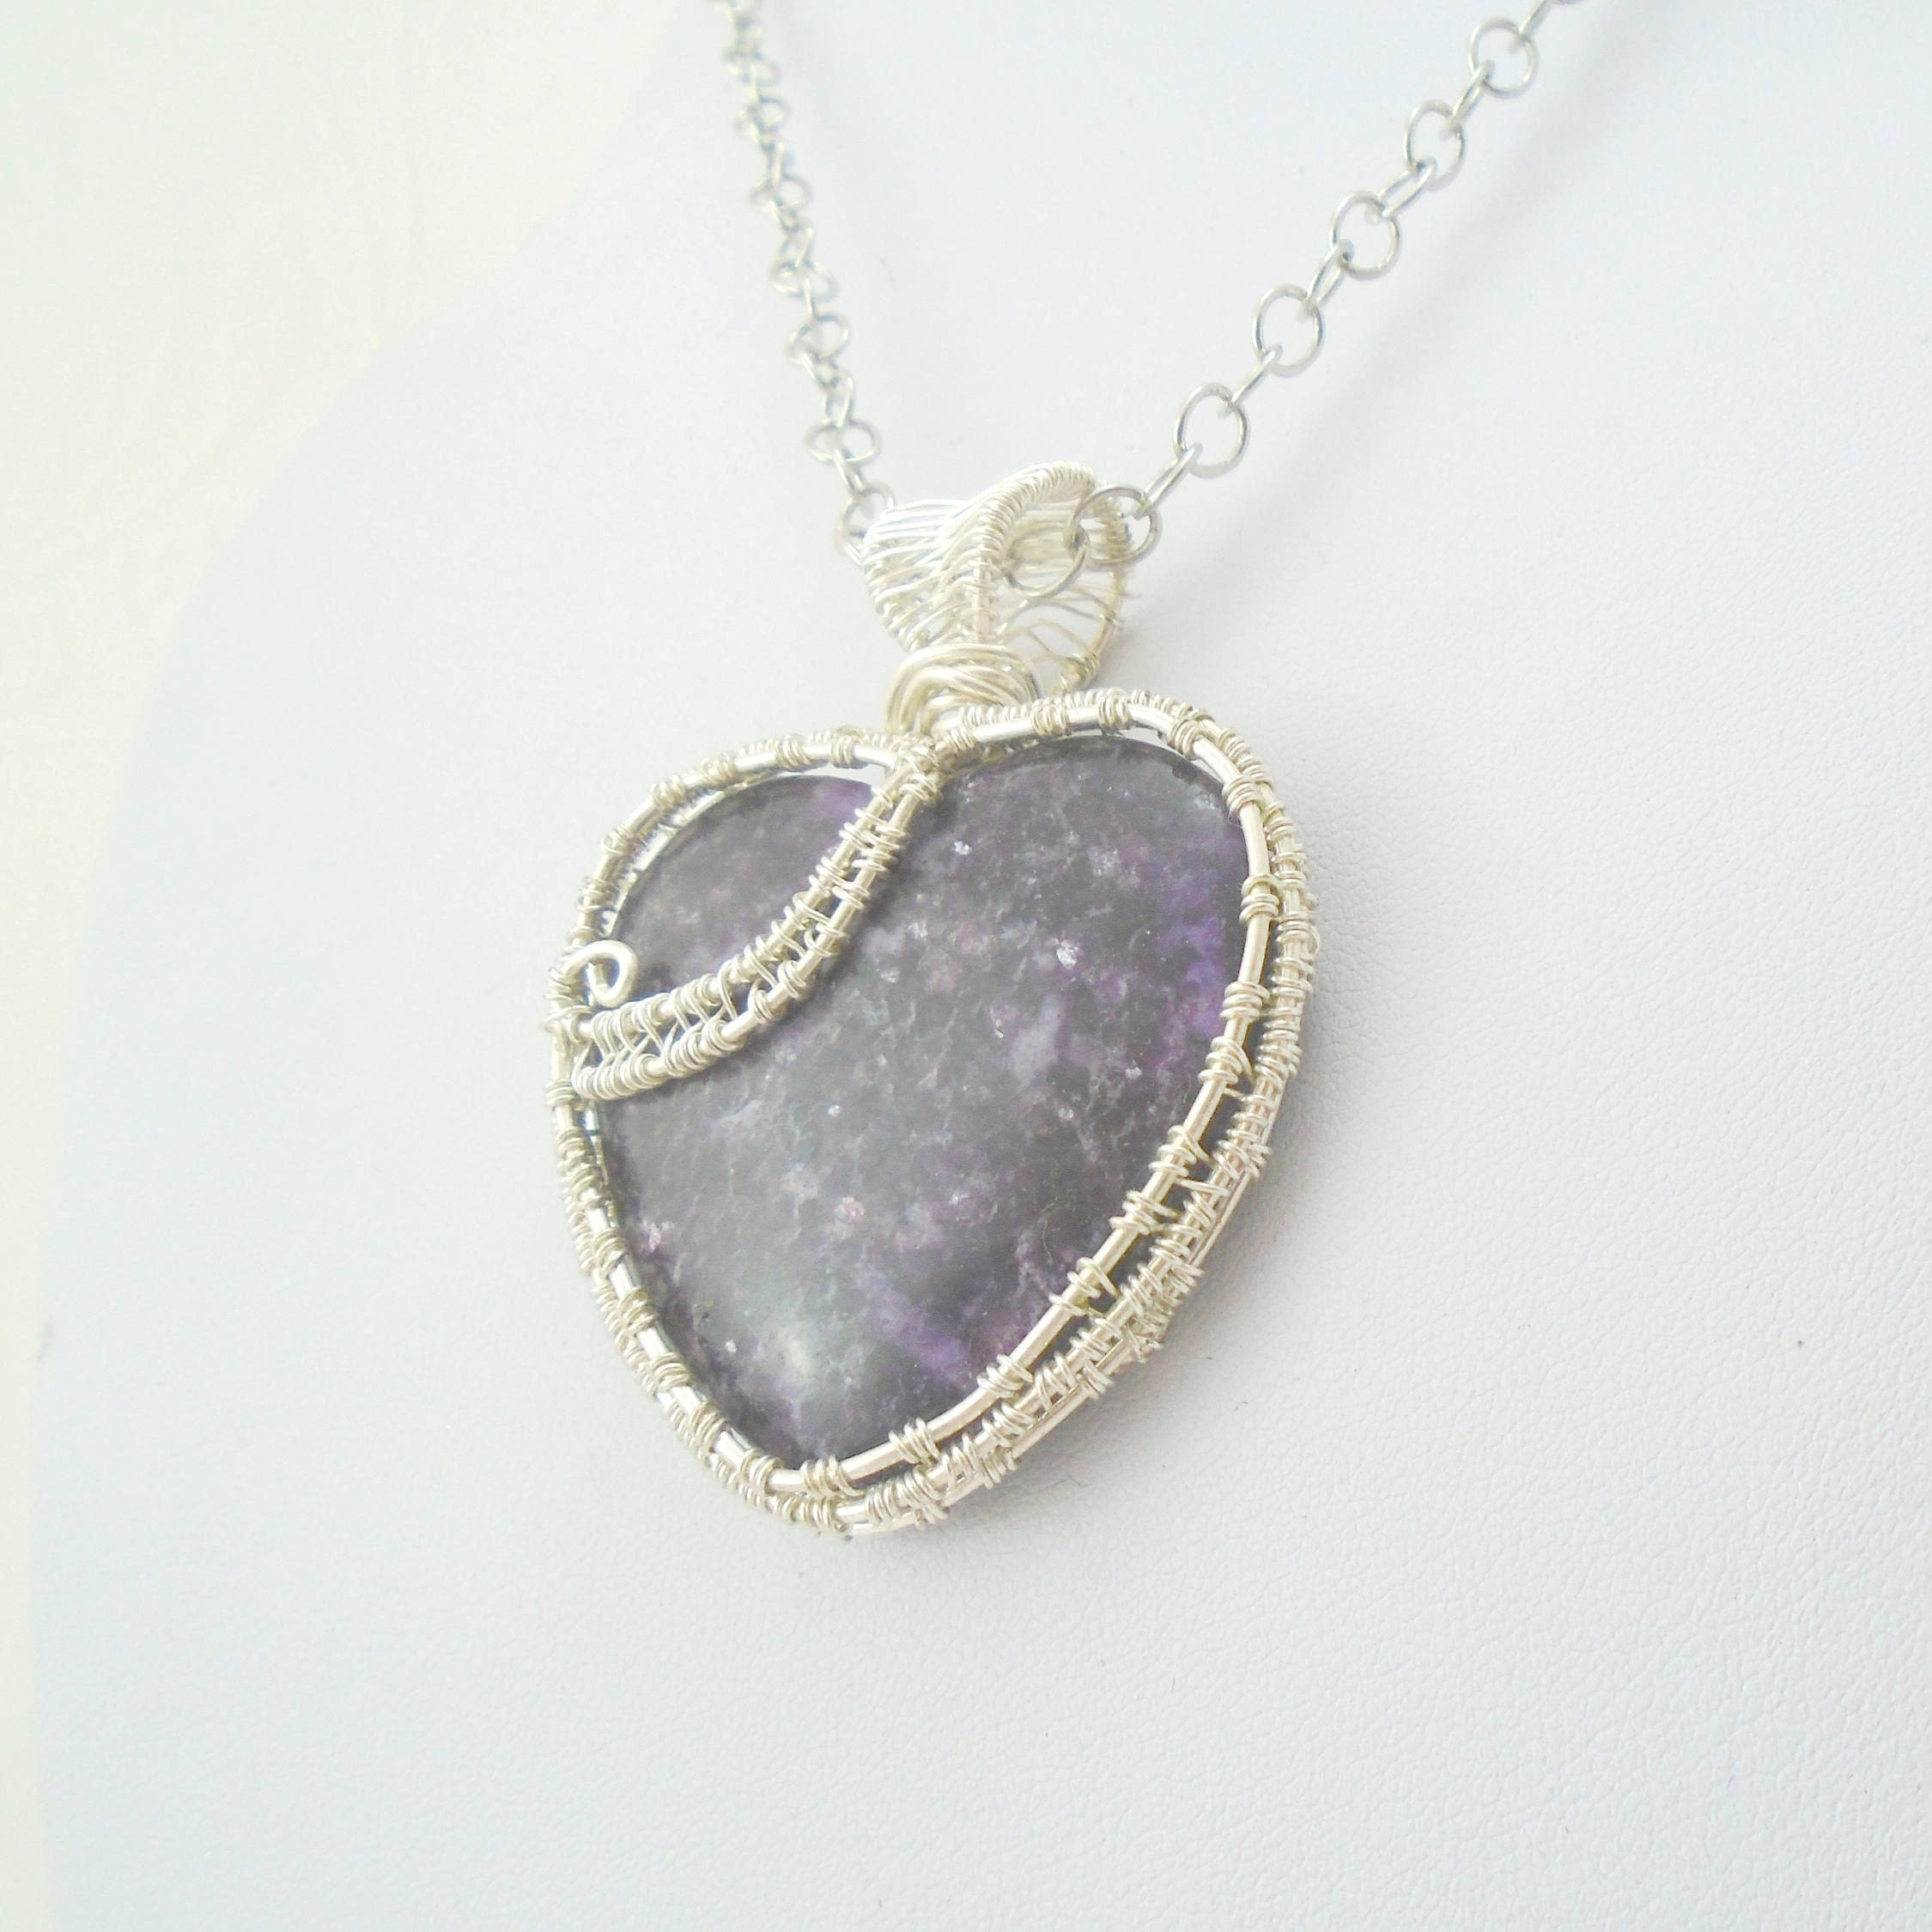 Amethyst pendant Heart Pendant wire wrapped jewelry amethyst necklace Heart necklace February birthstone heart cabochon gift for her